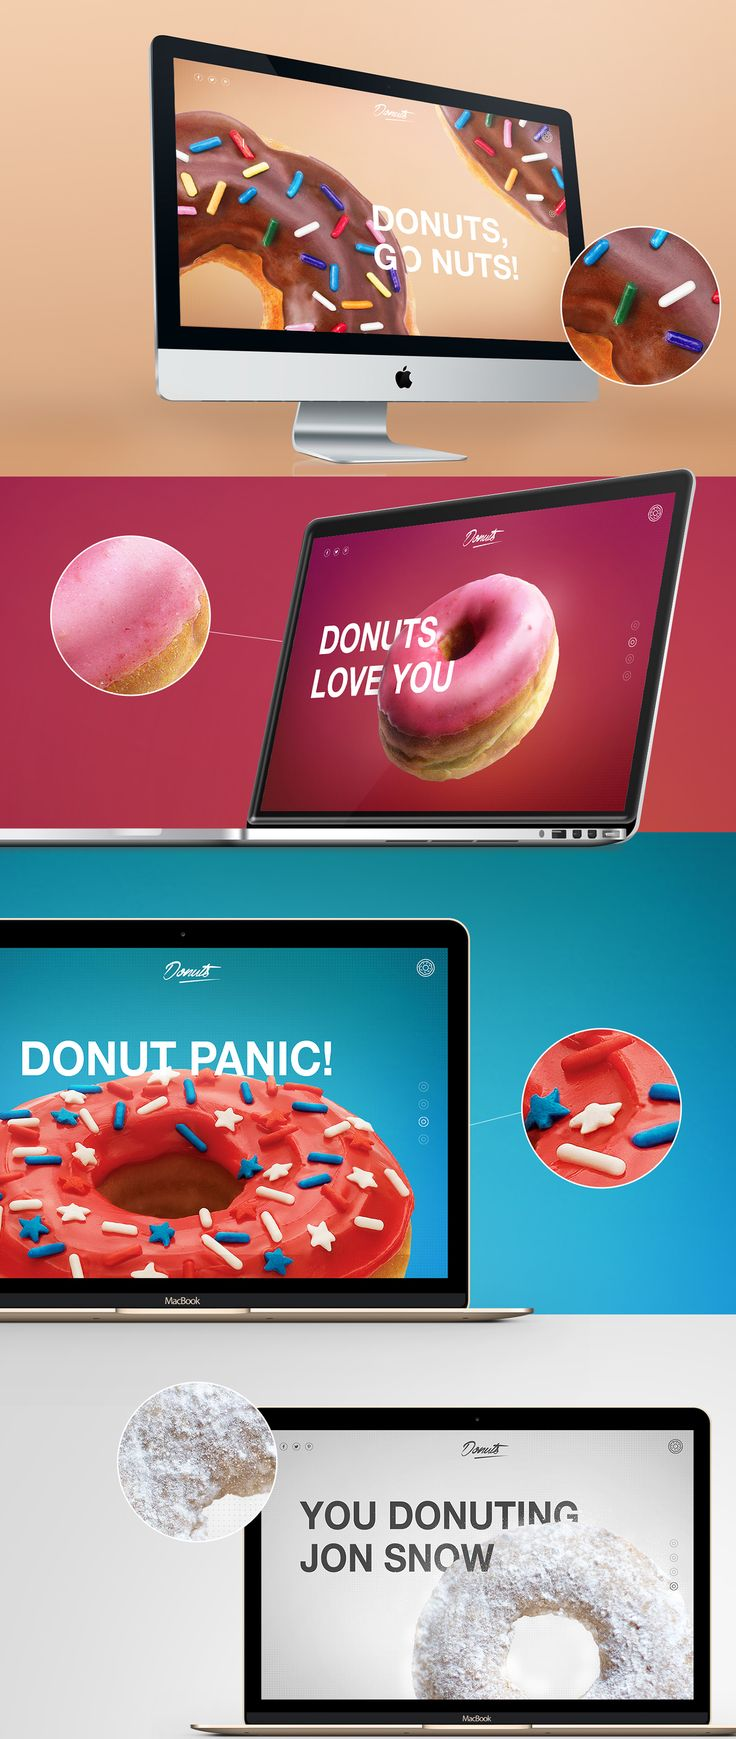 Donuts #webdesign #colorful #website #design